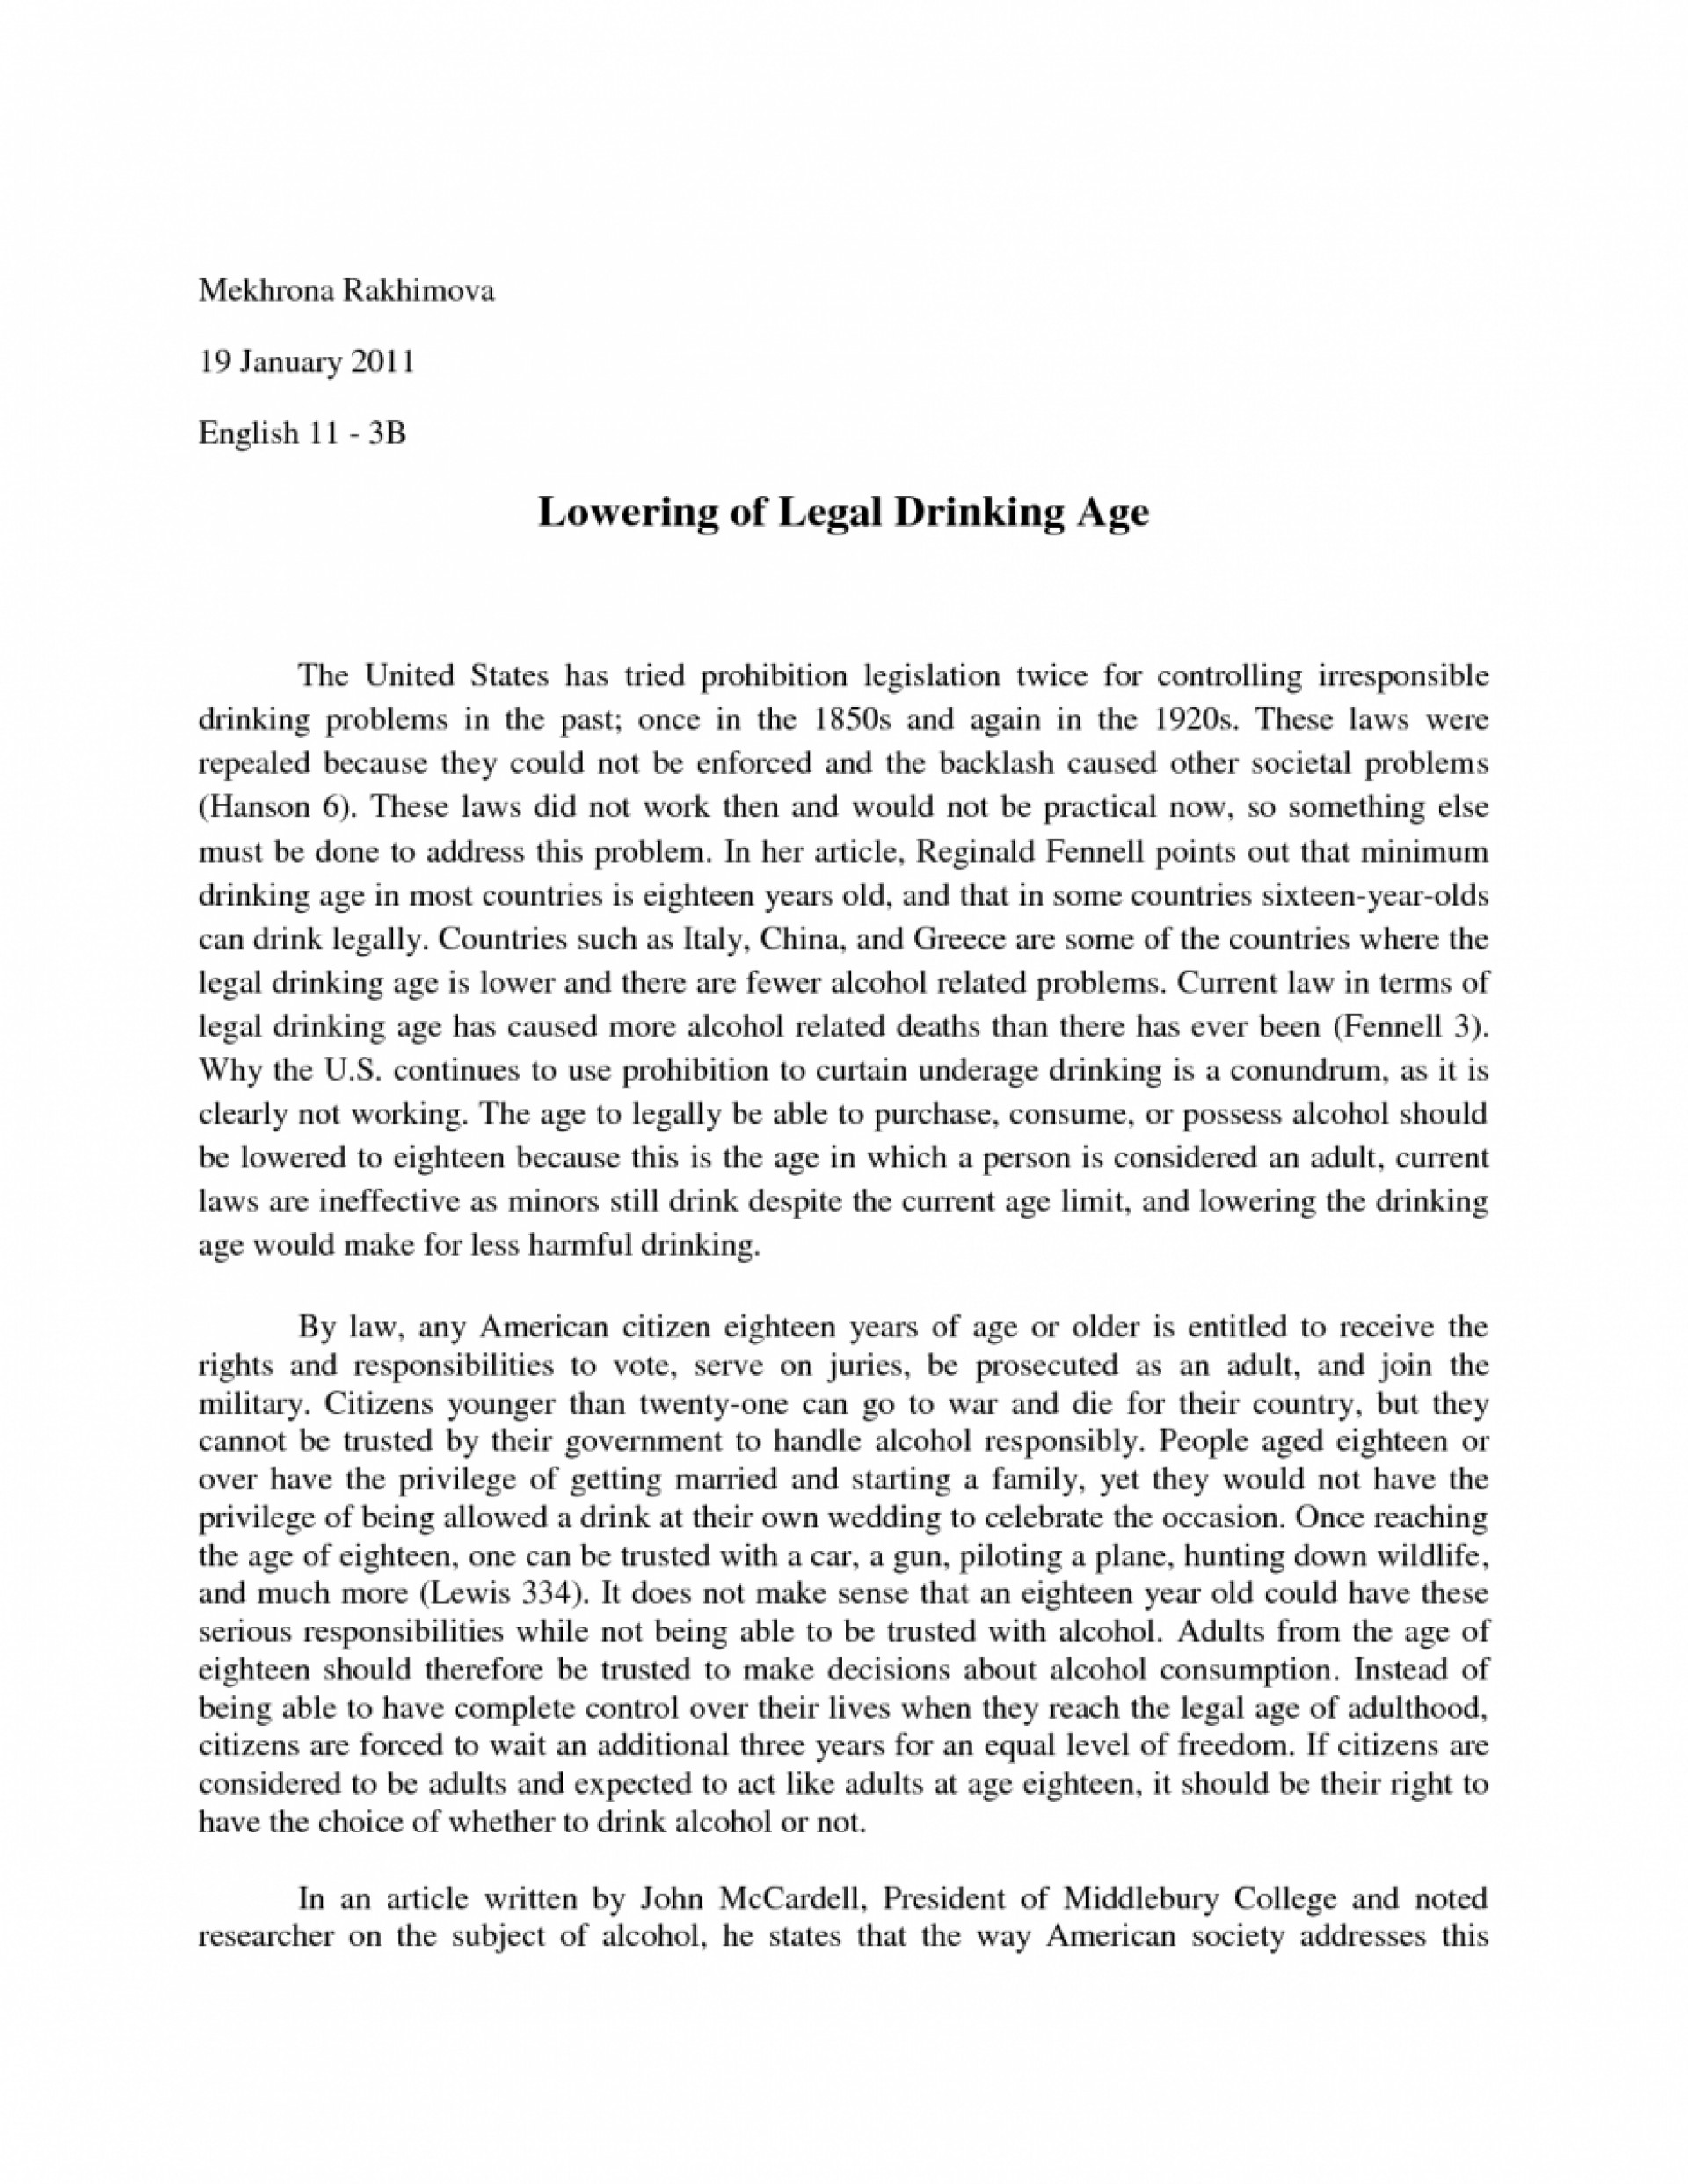 Essays on lowering the drinking age to 18